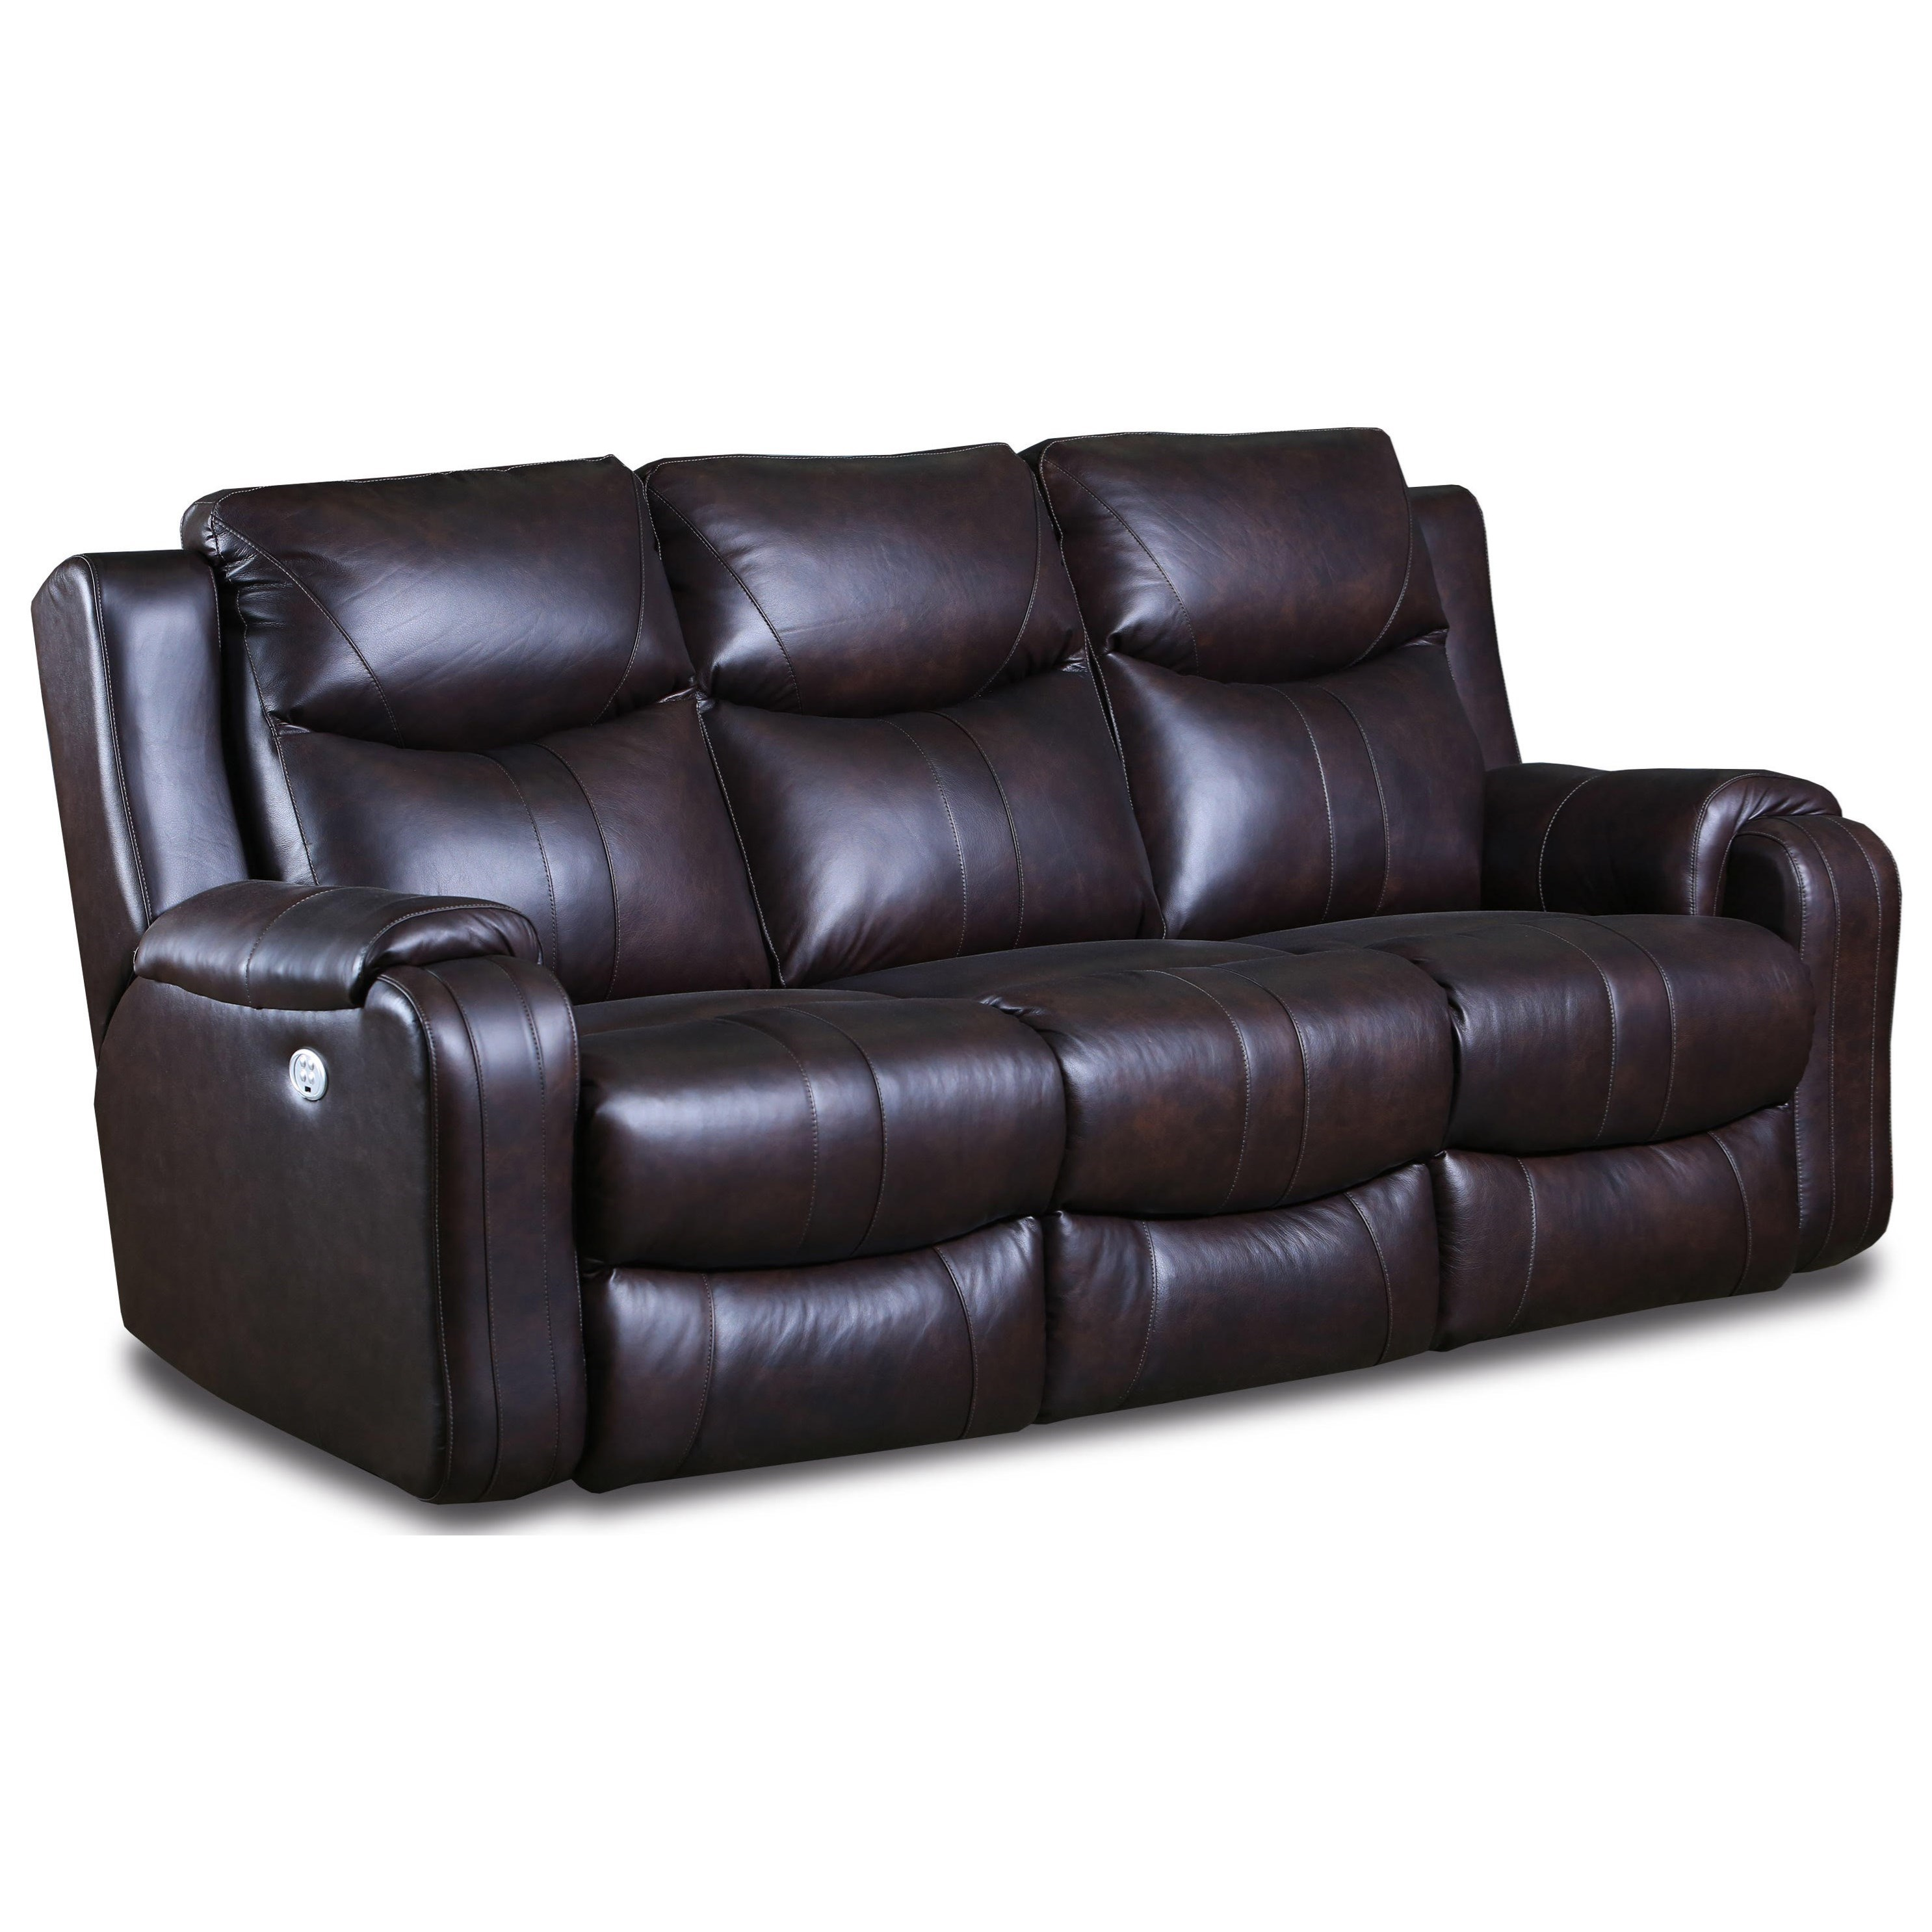 Marvel Double Reclining Sofa with Power Headrests by Southern Motion at Sparks HomeStore